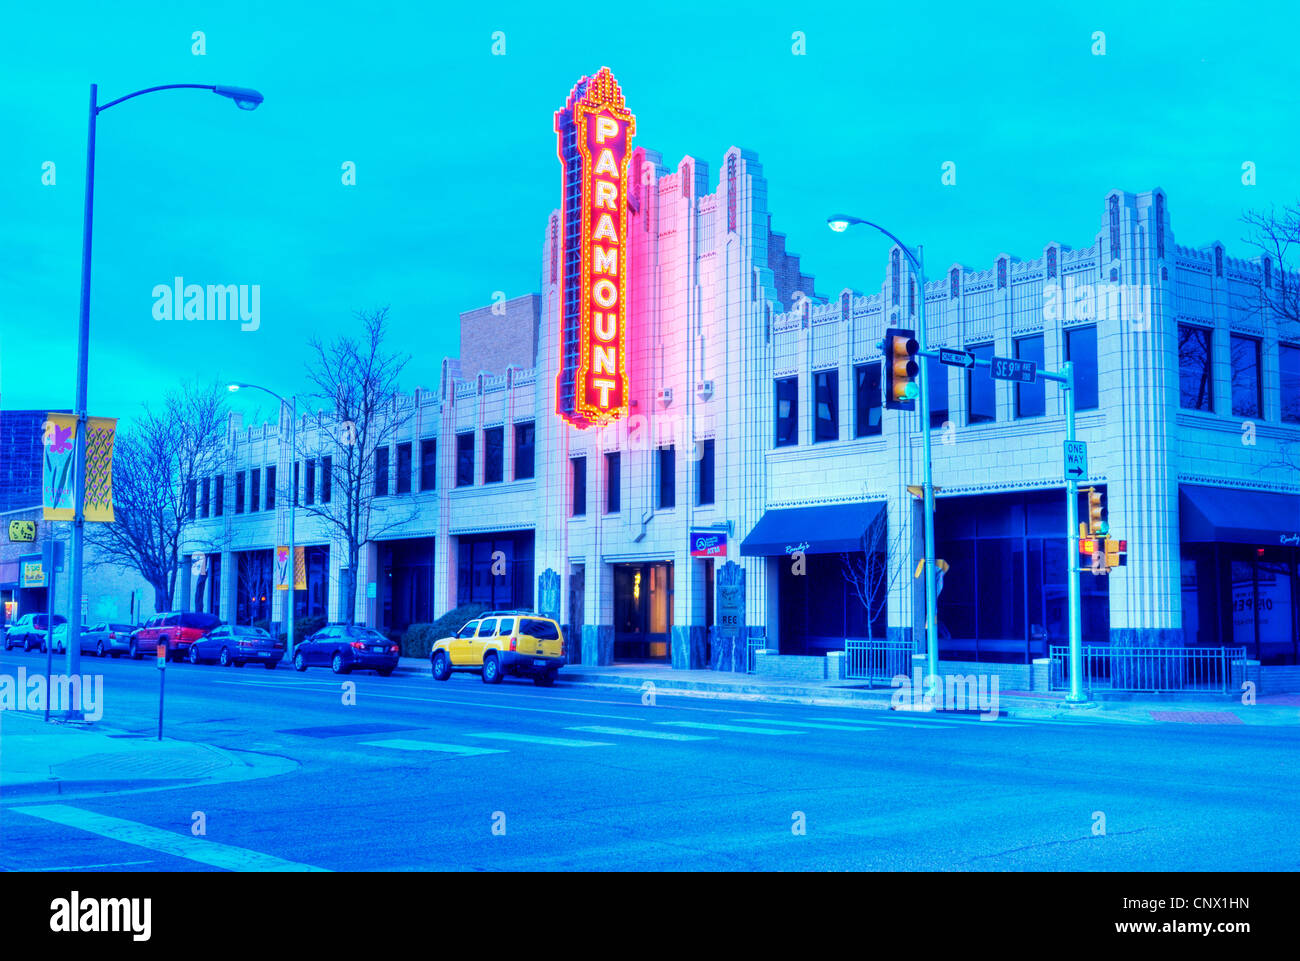 The Paramount Theater in downtown Amarillo, TX. - Stock Image